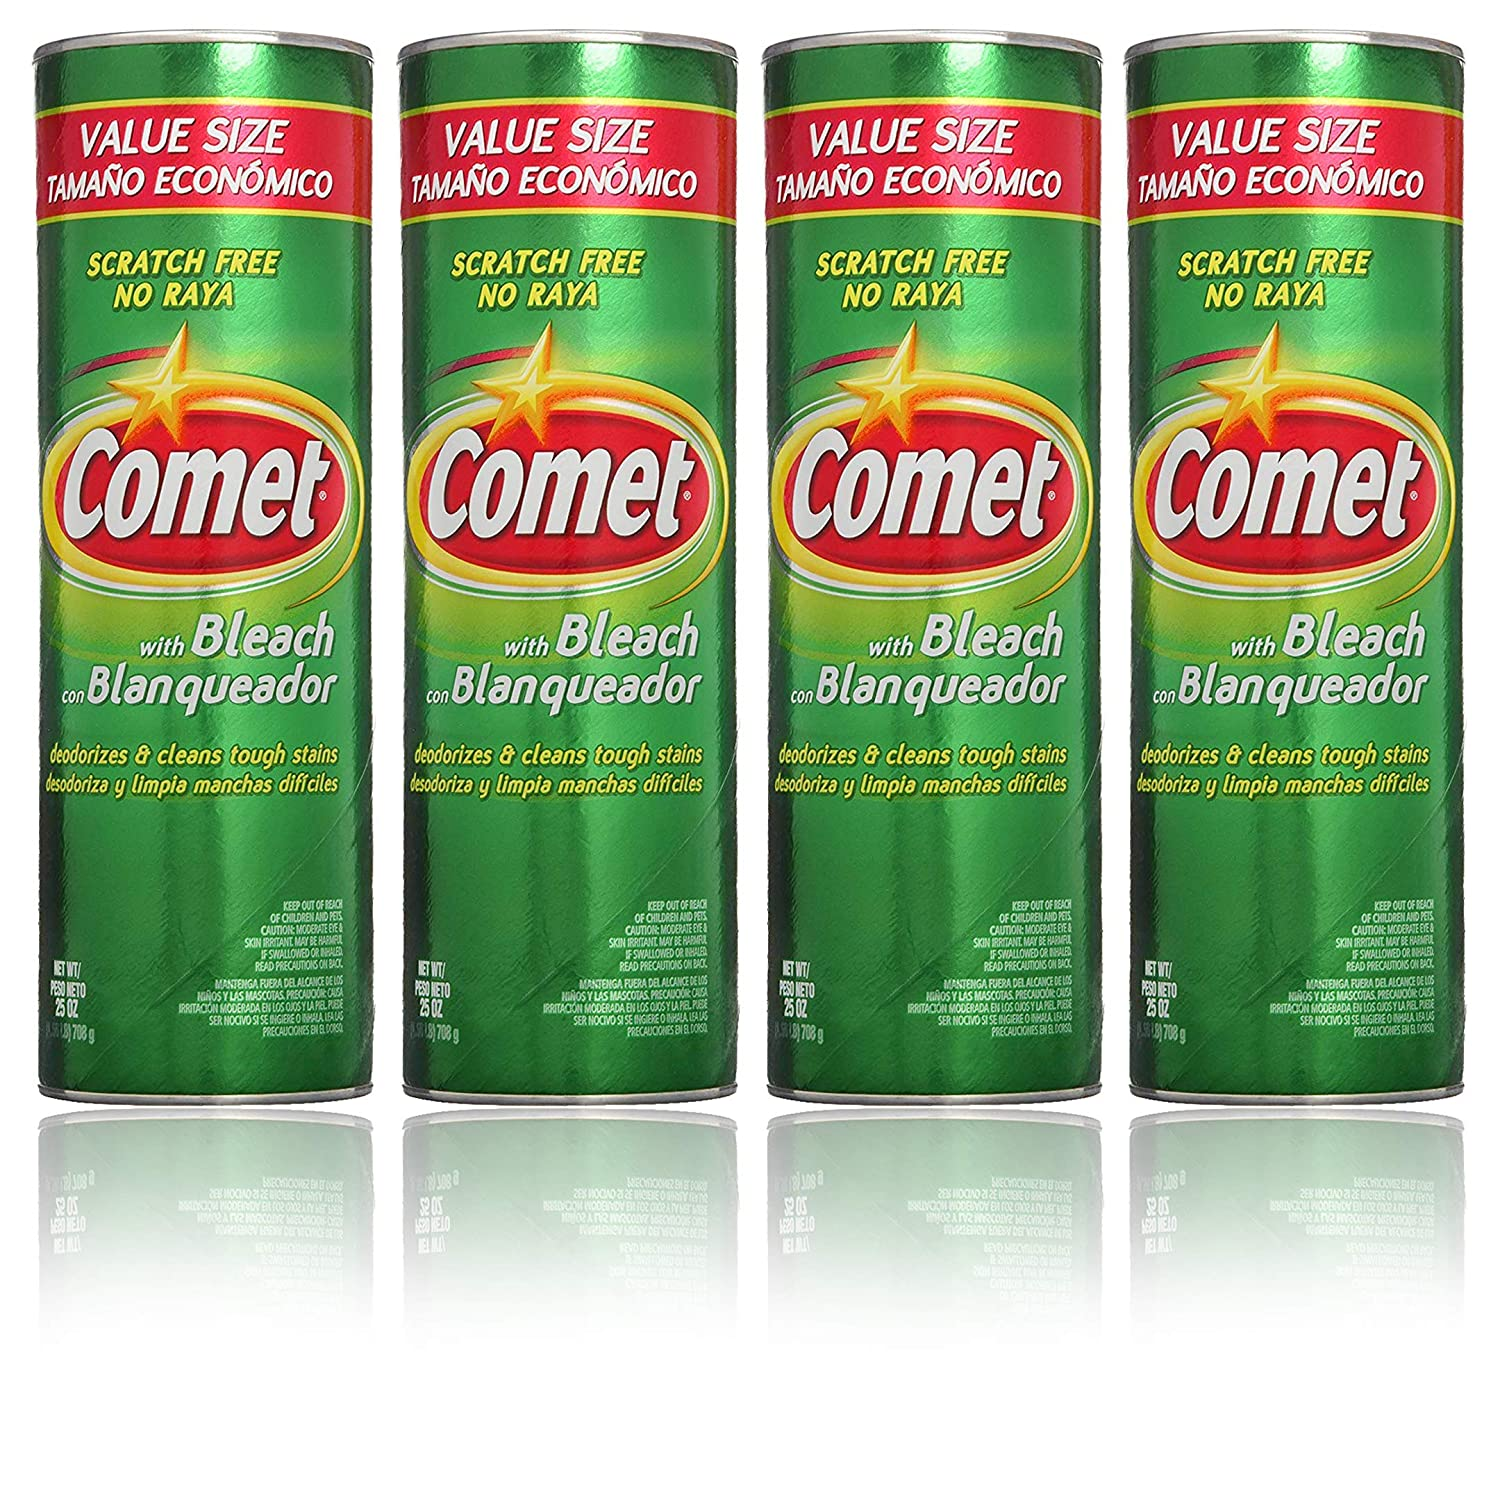 Terrific Comet Cleaner With Bleach Powder 25 Ounces Scratch Free Value Pack Of 4 Units Machost Co Dining Chair Design Ideas Machostcouk